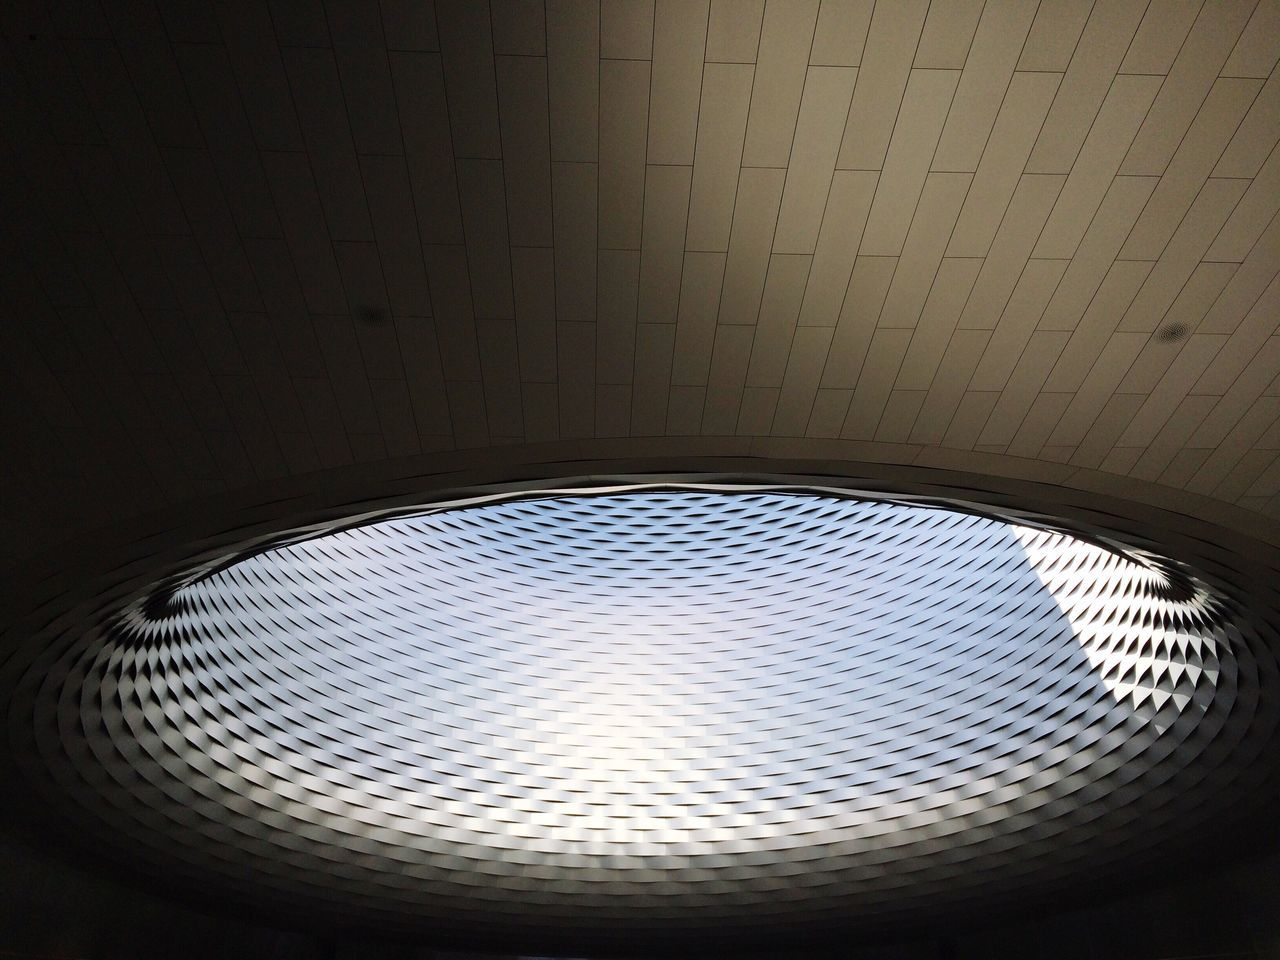 ceiling, indoors, low angle view, no people, pattern, illuminated, built structure, architecture, day